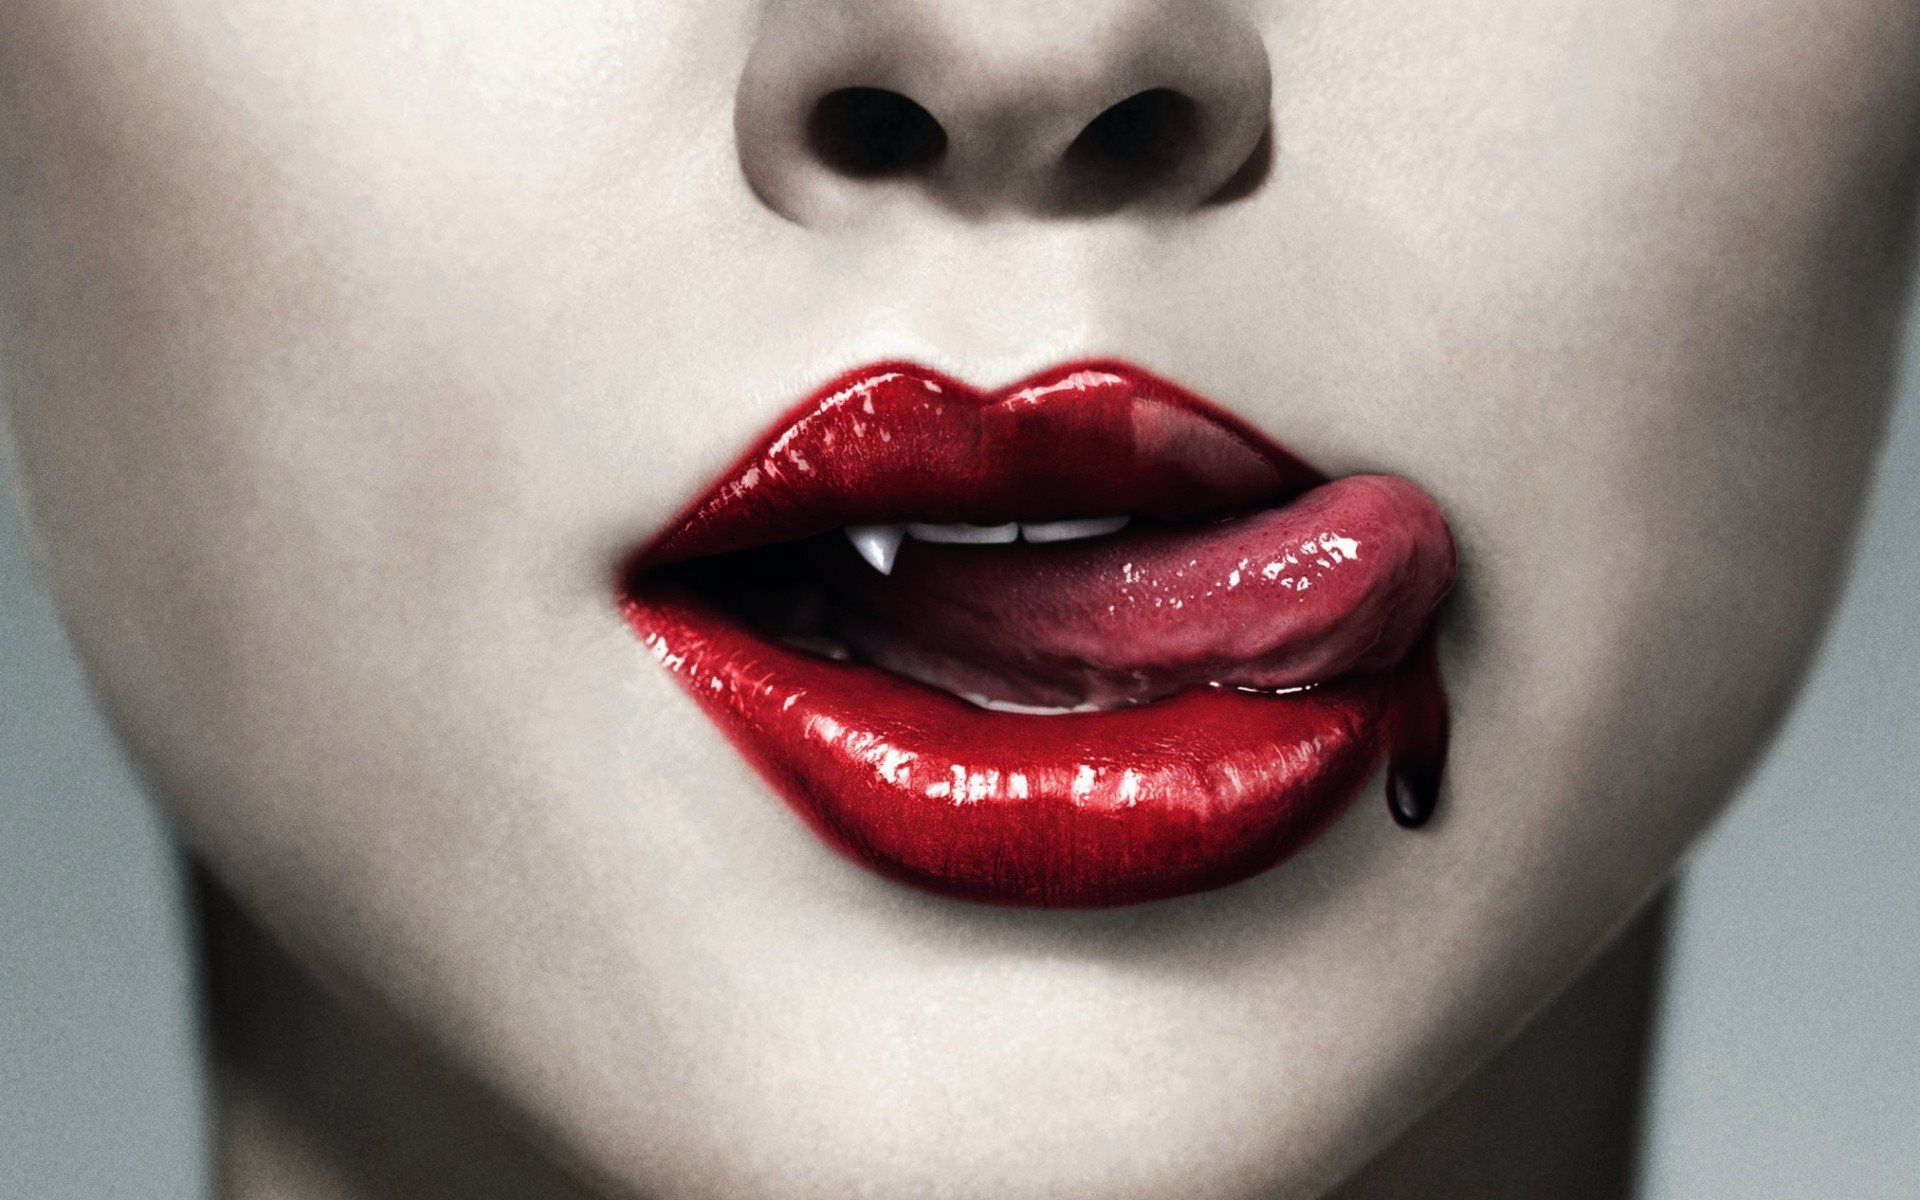 Do you watch the show True Blood? #blood